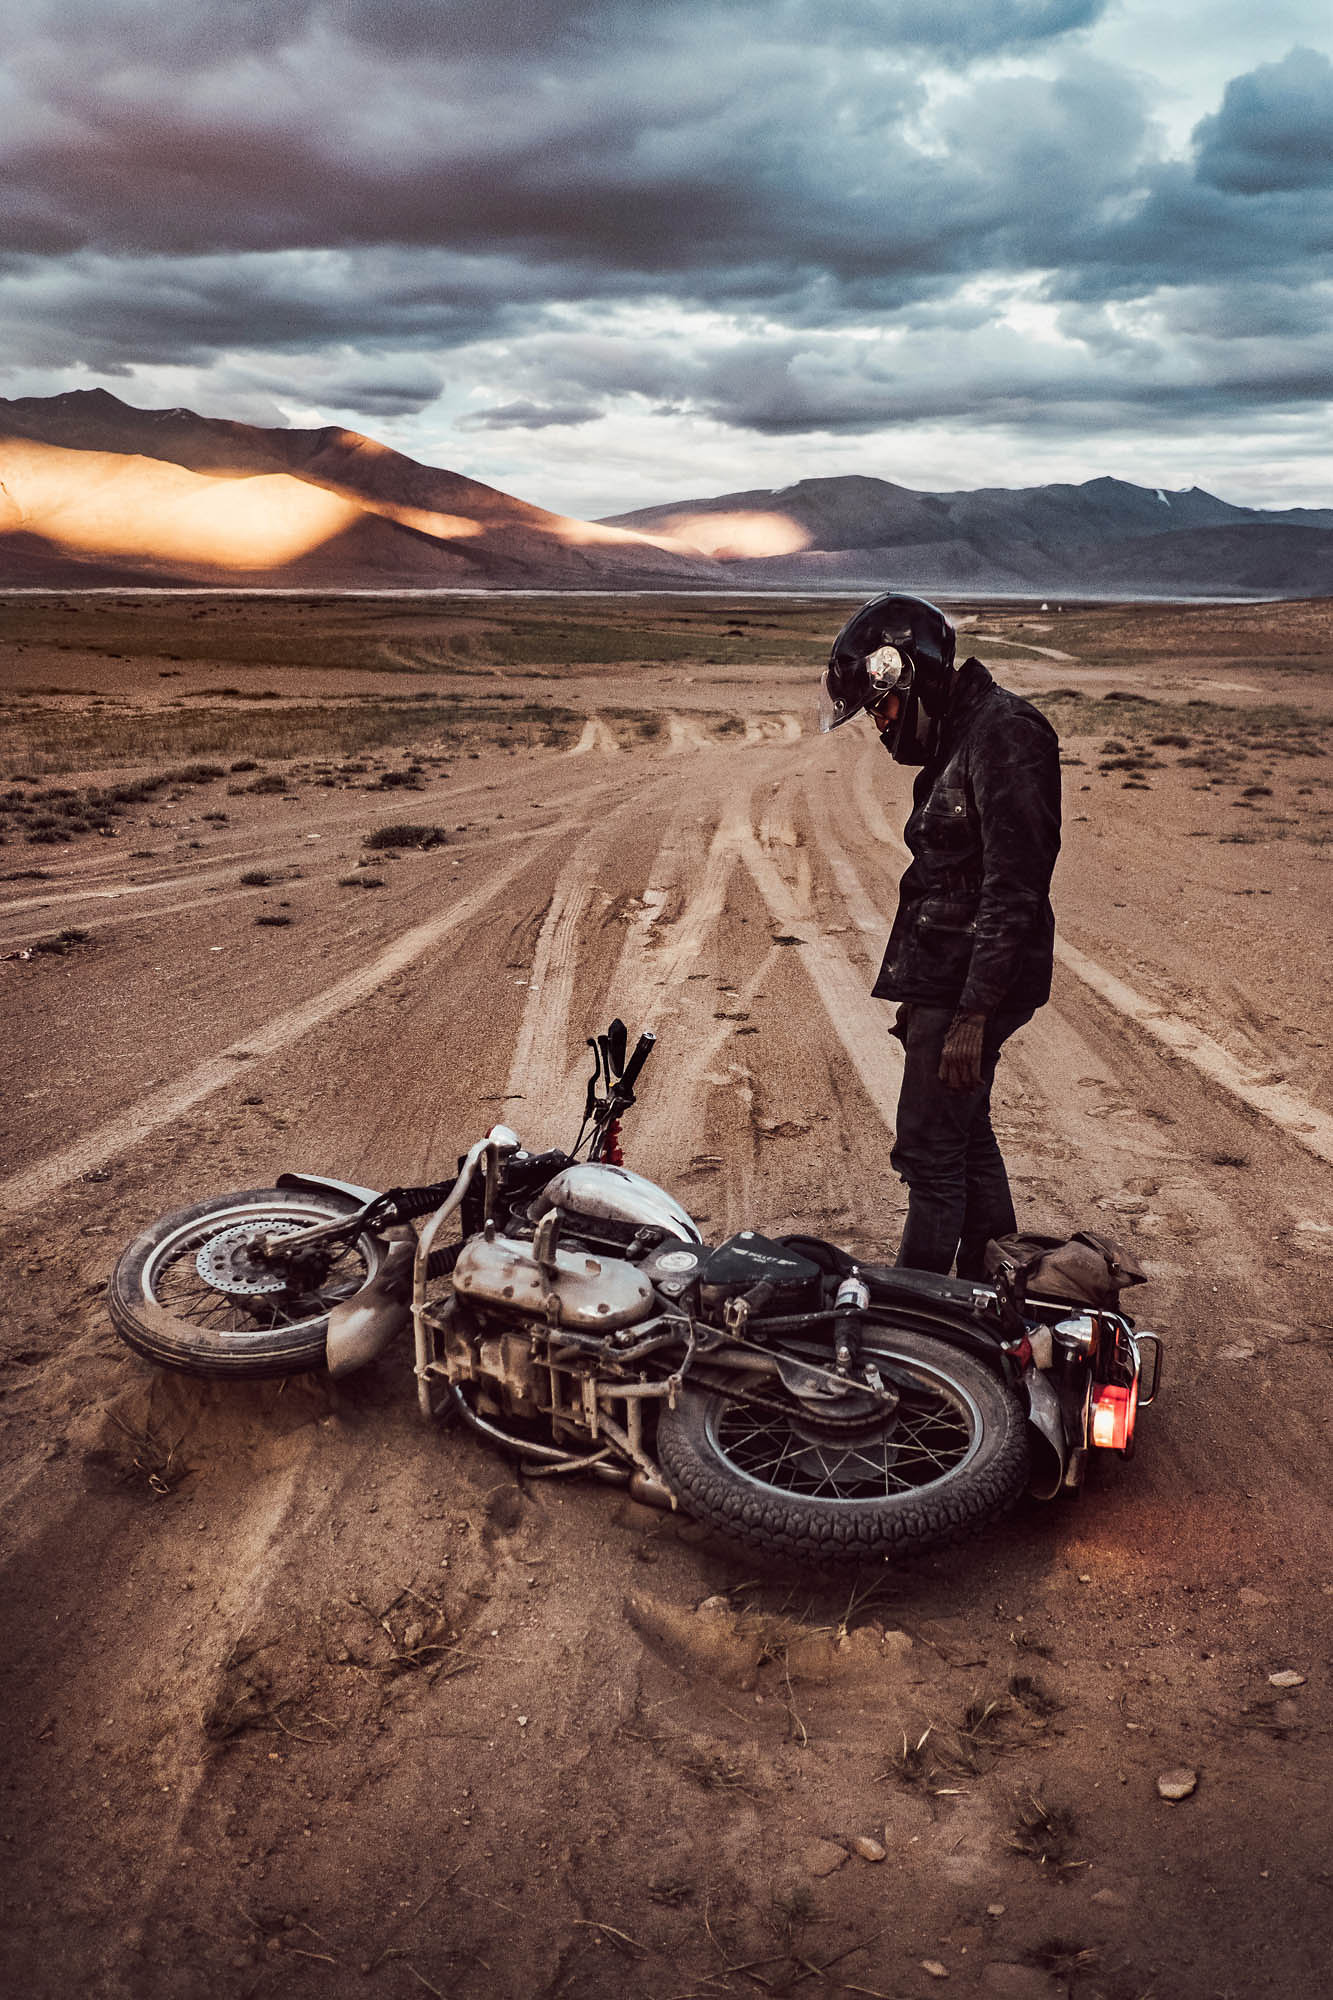 A motorcycle rider looks down at his fallen bike on a majestic road in the Rajasthan desert